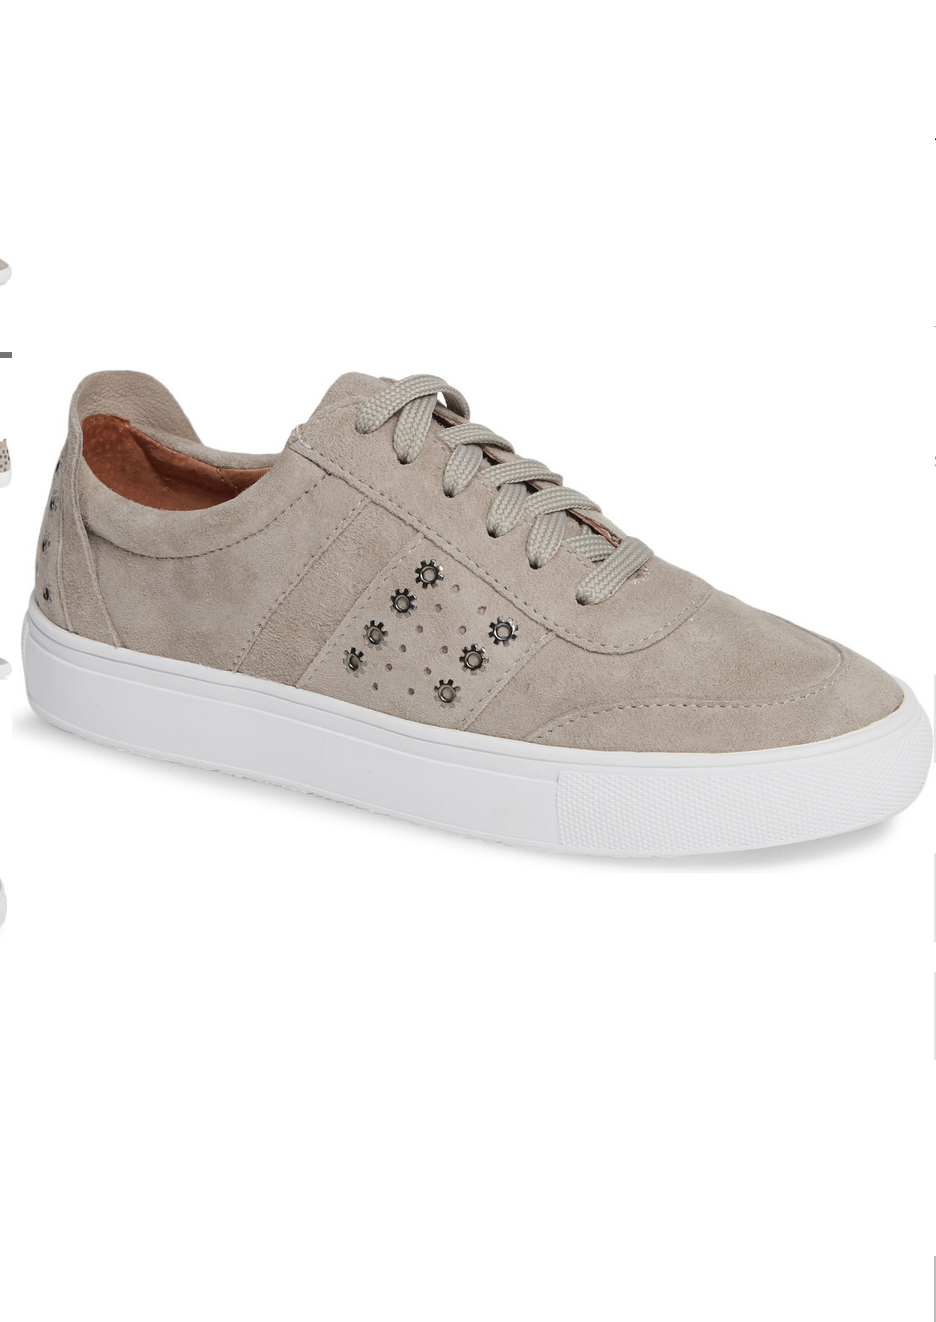 $45 - LOVE this sneaker for a casual look with pretty much any outfit!